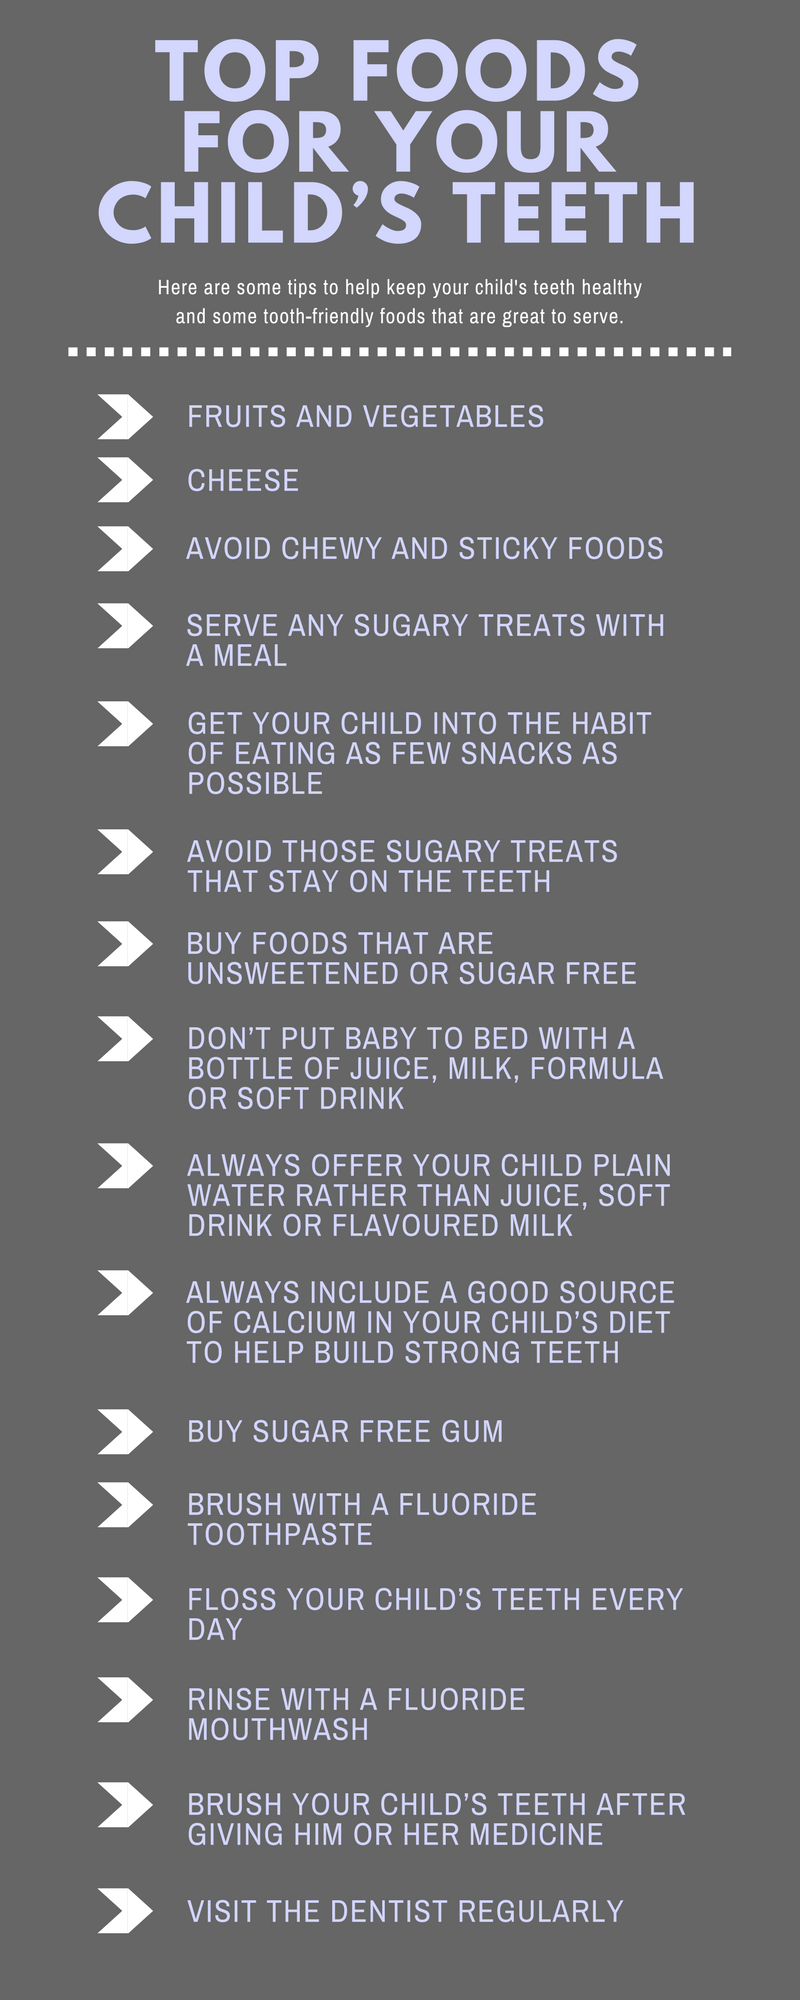 Top foods for your childs teeth